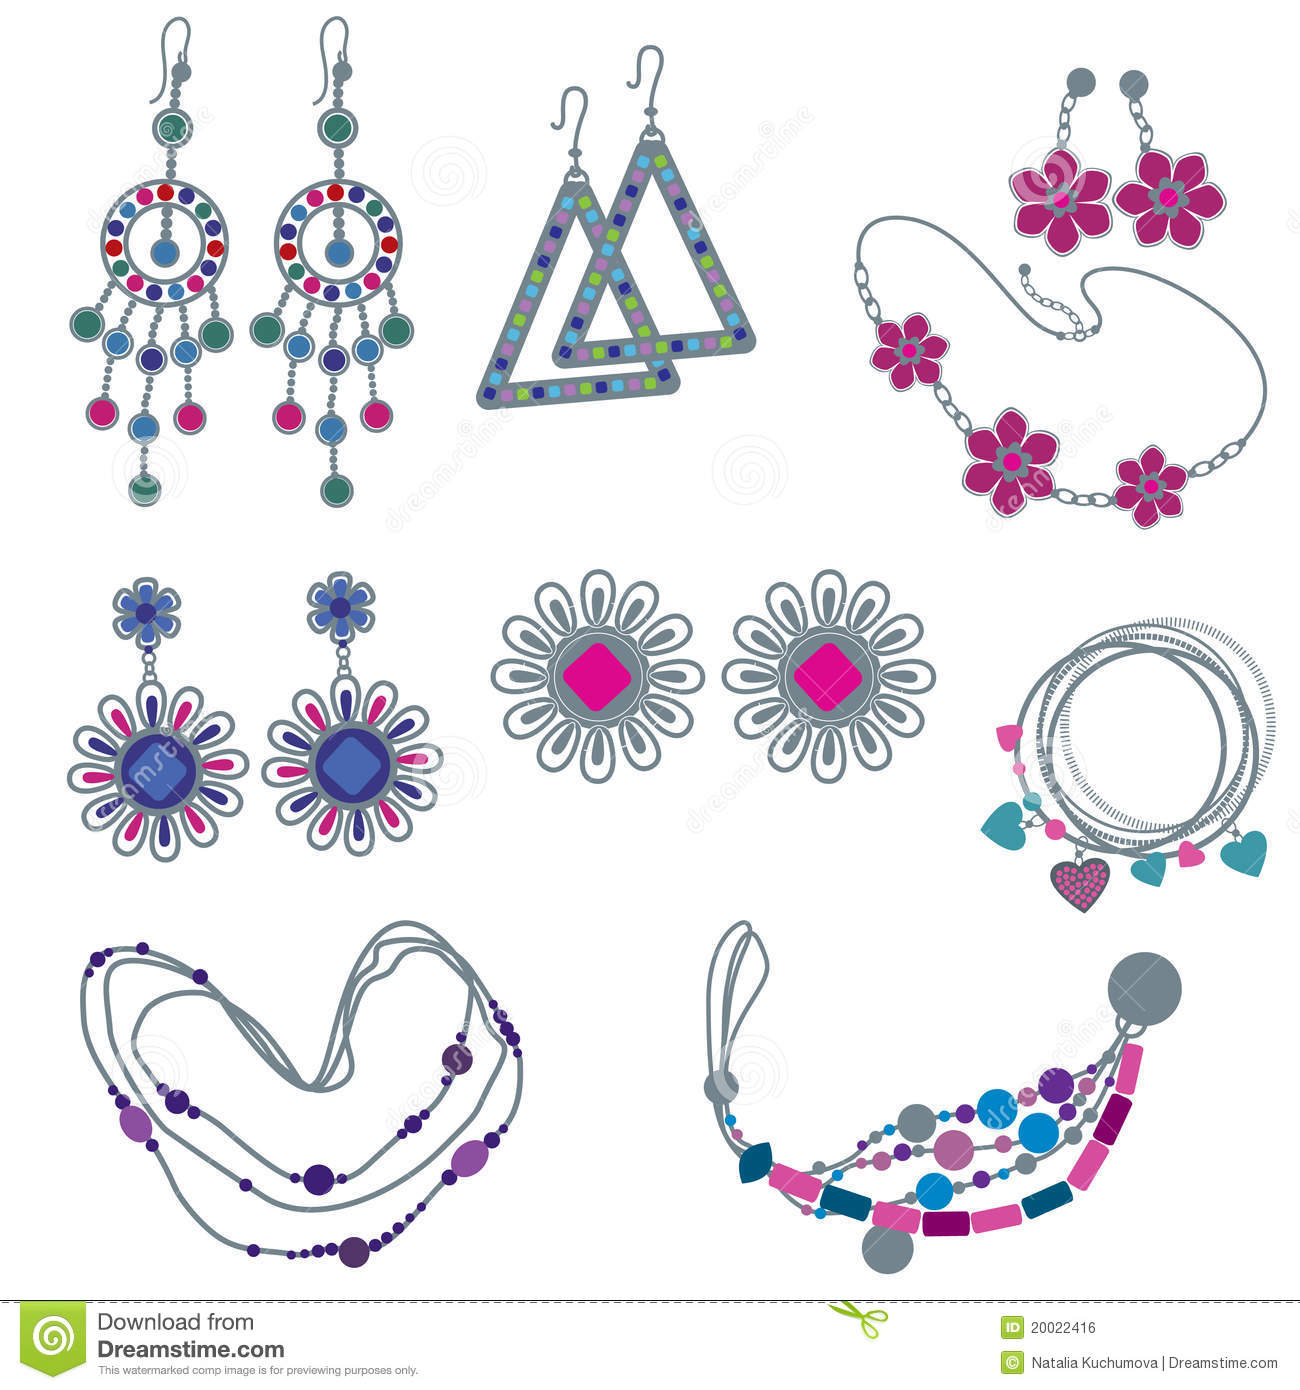 jewelry clip art free download - photo #7